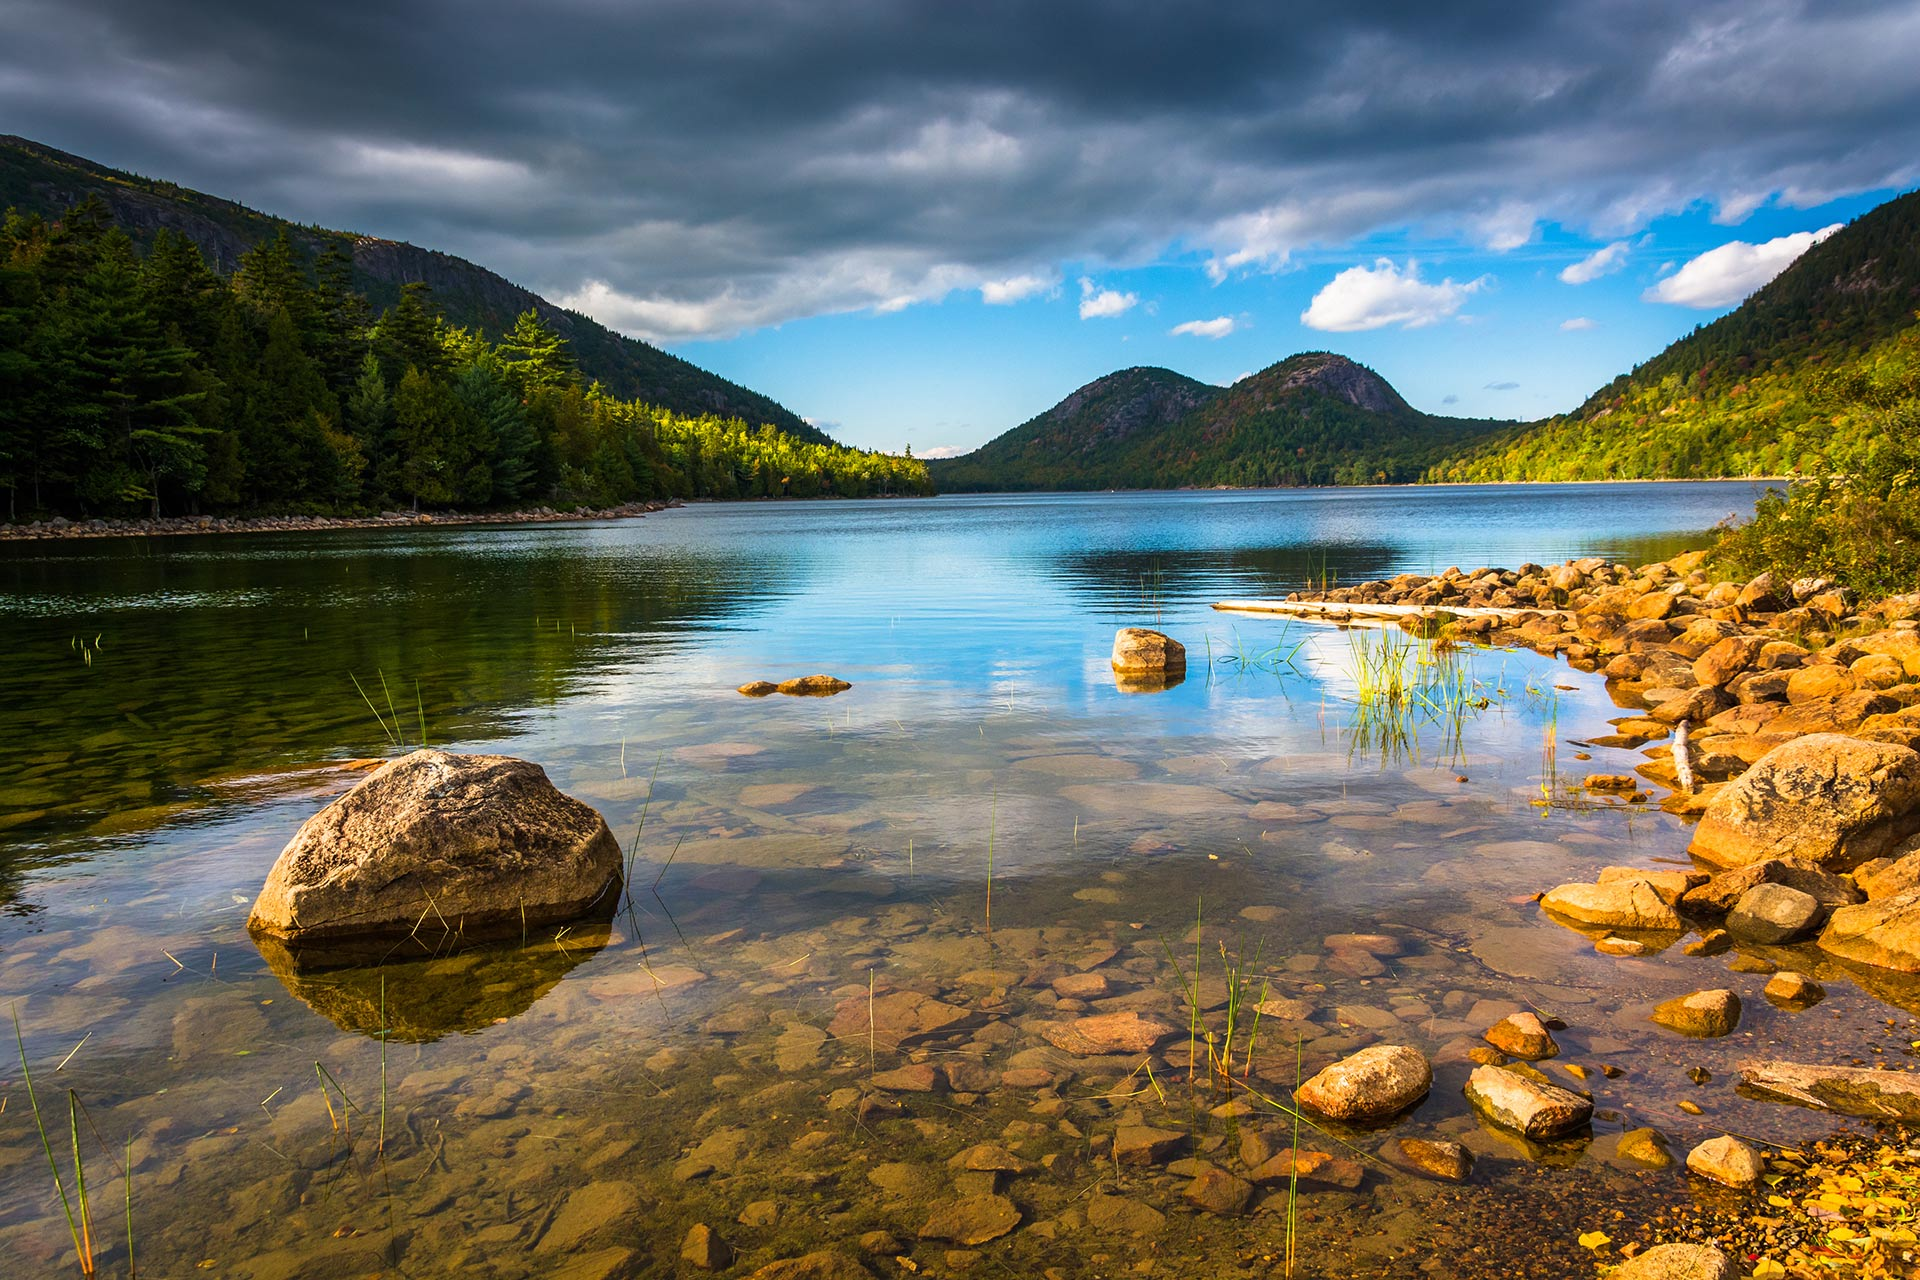 Acadia National Park in Maine